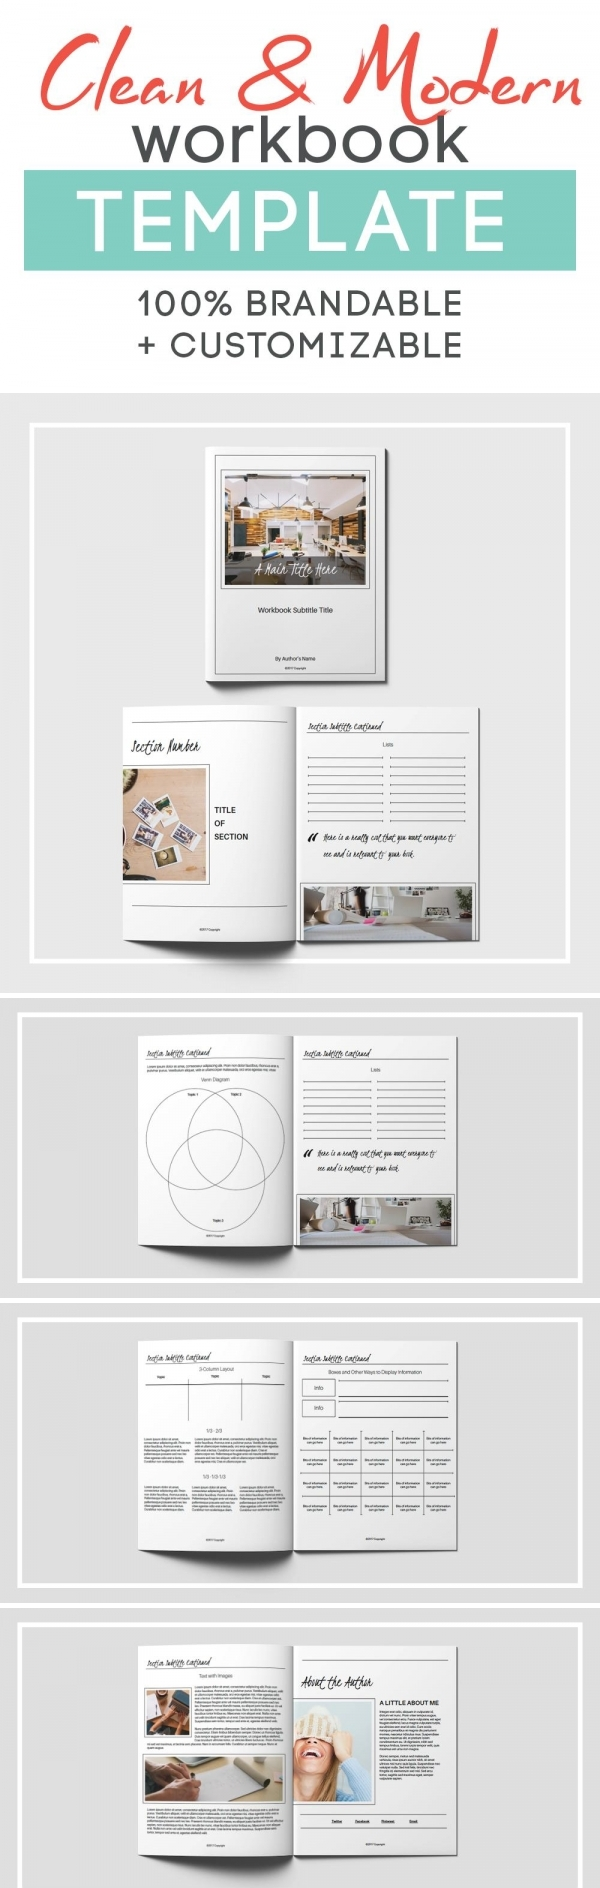 Clean Workbook Template Templates, Layout template